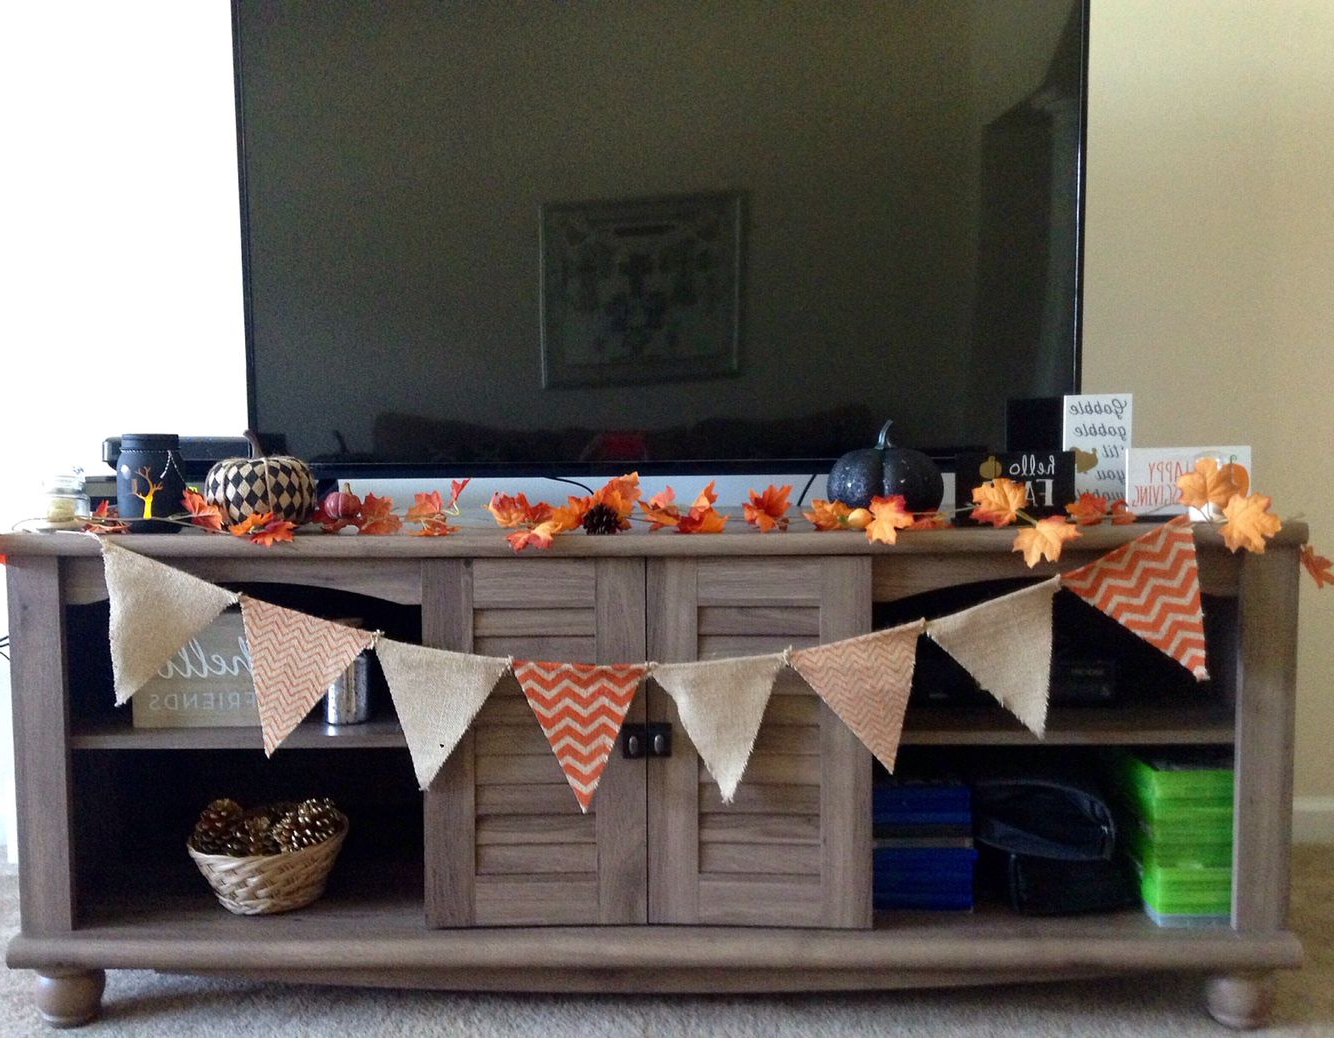 Tv Stand Fall Decor | Autumn | Fall Decor, Fall Home Decor, Decor Intended For Bale 82 Inch Tv Stands (View 9 of 20)